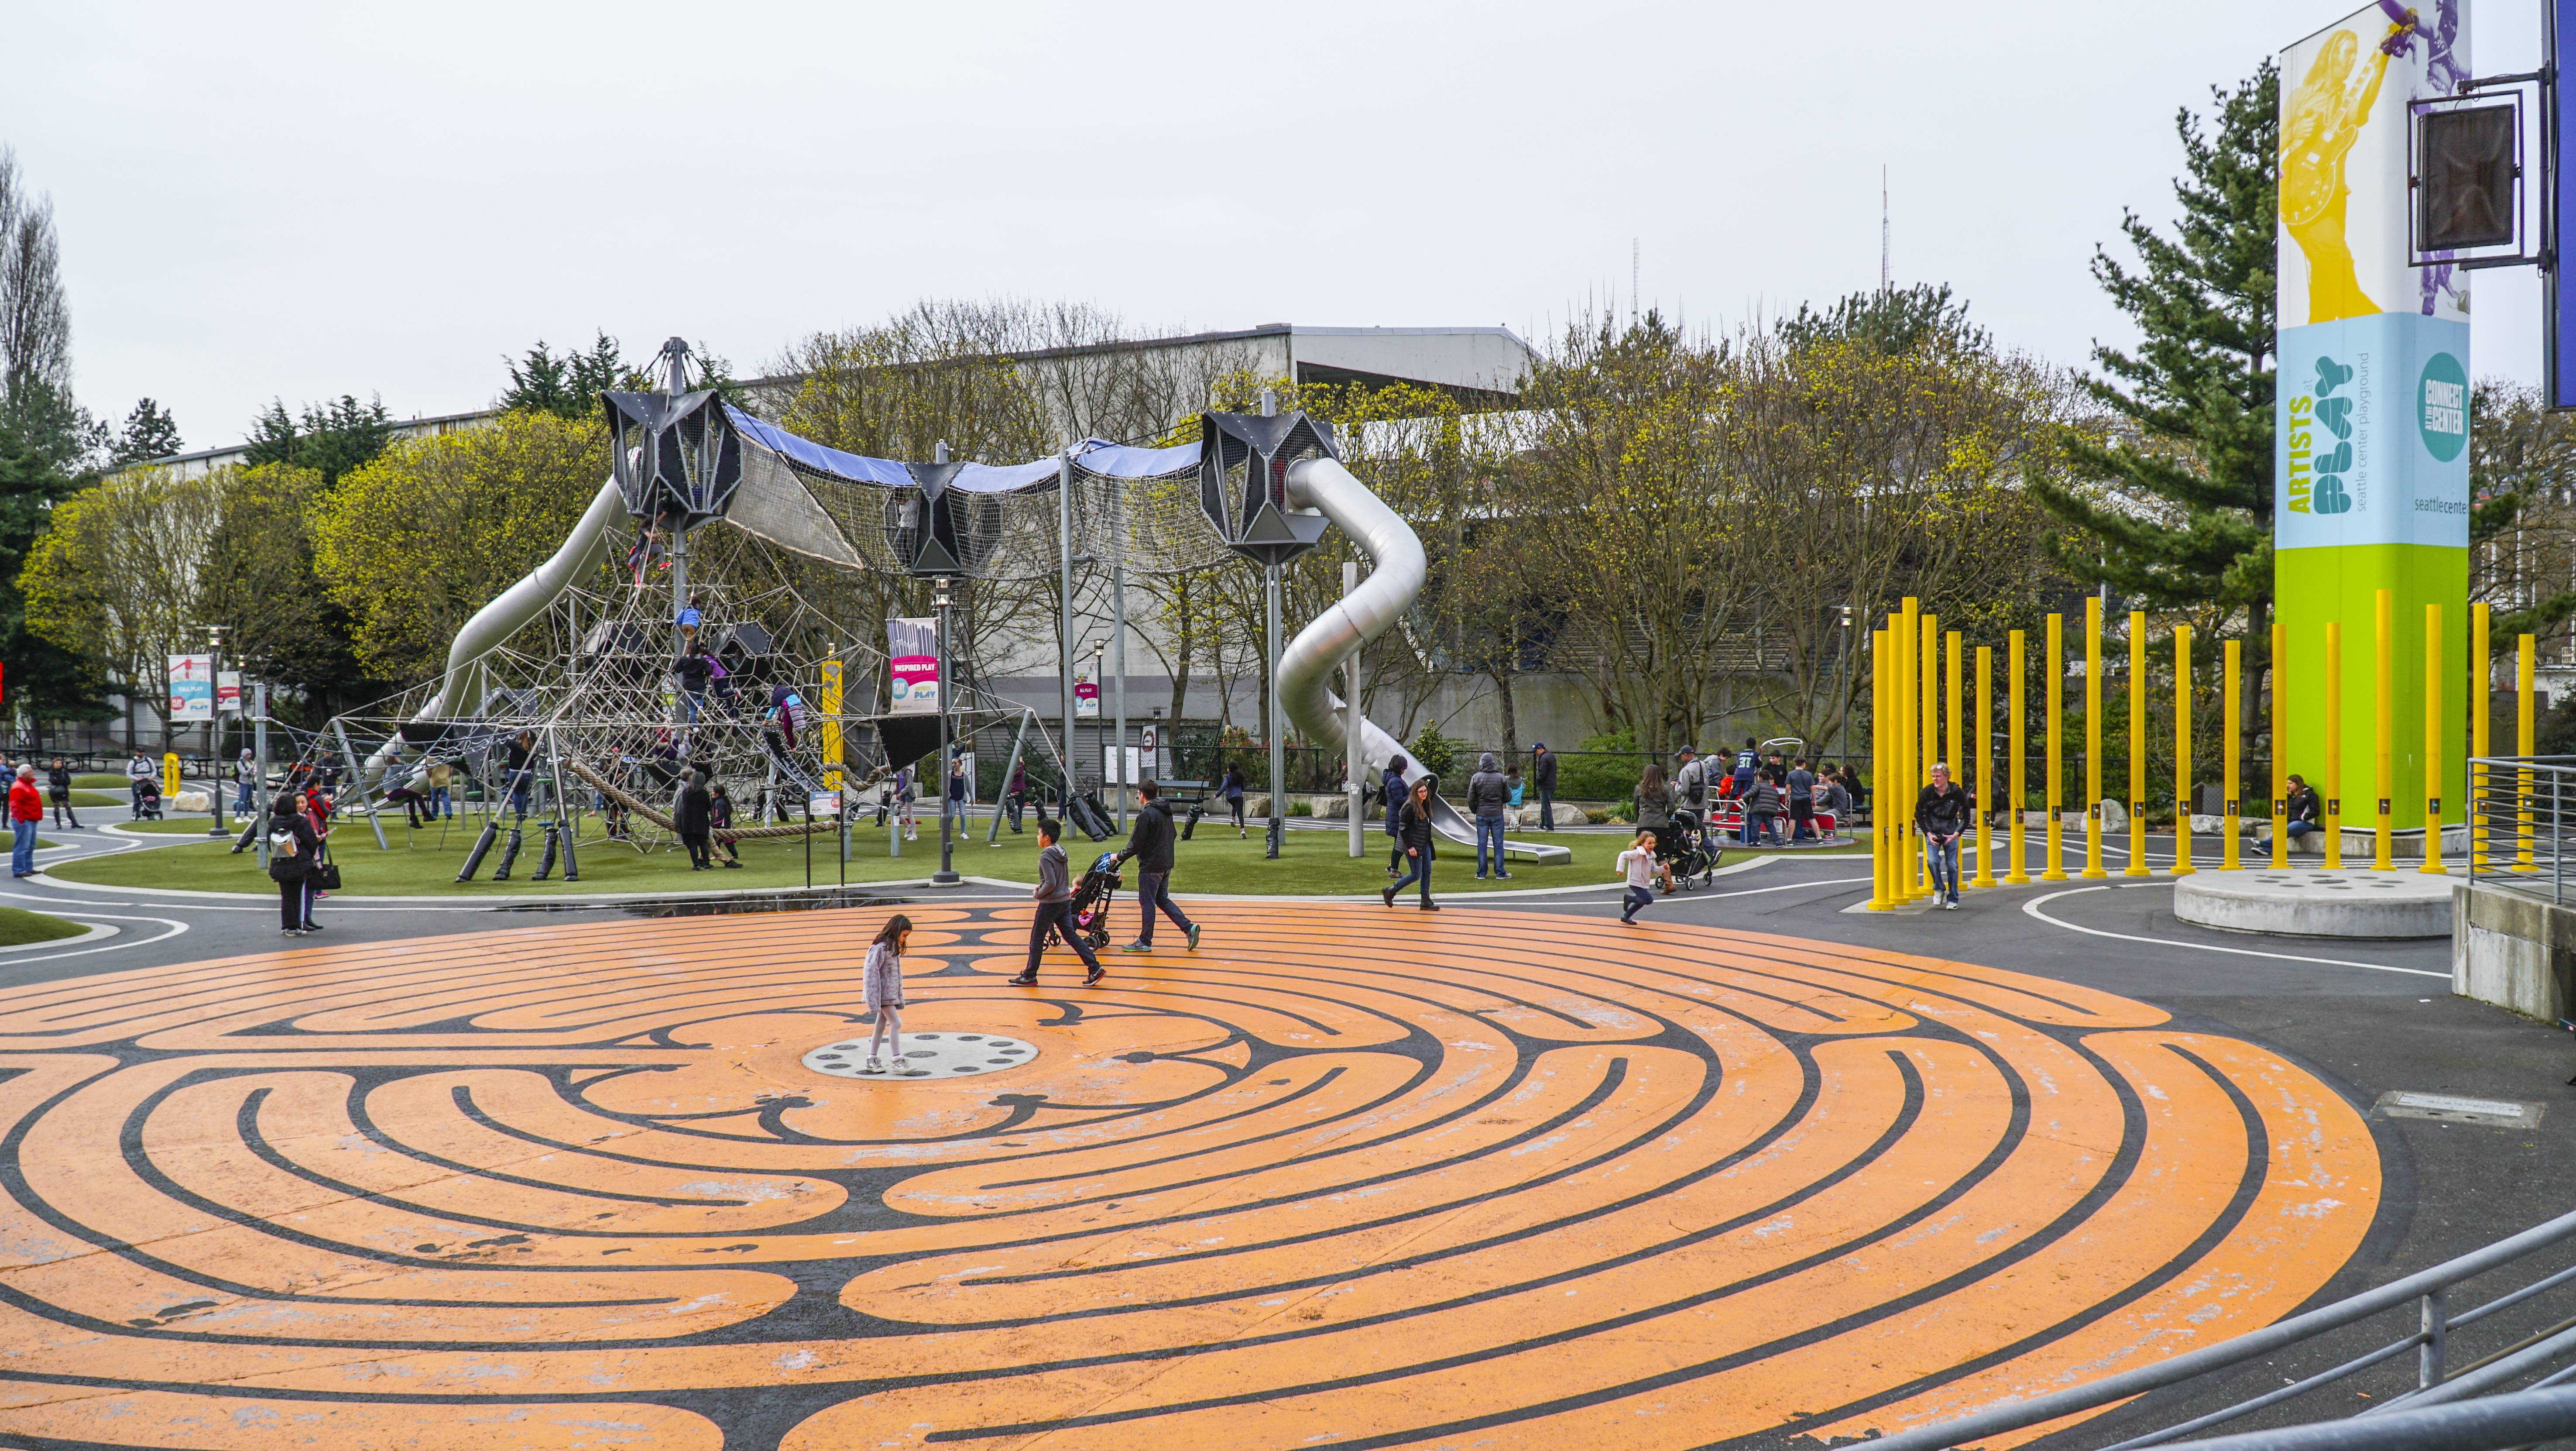 A playground with children playing. On the ground in the foreground is an orange circular design. In the distance is various assorted playground equipment.